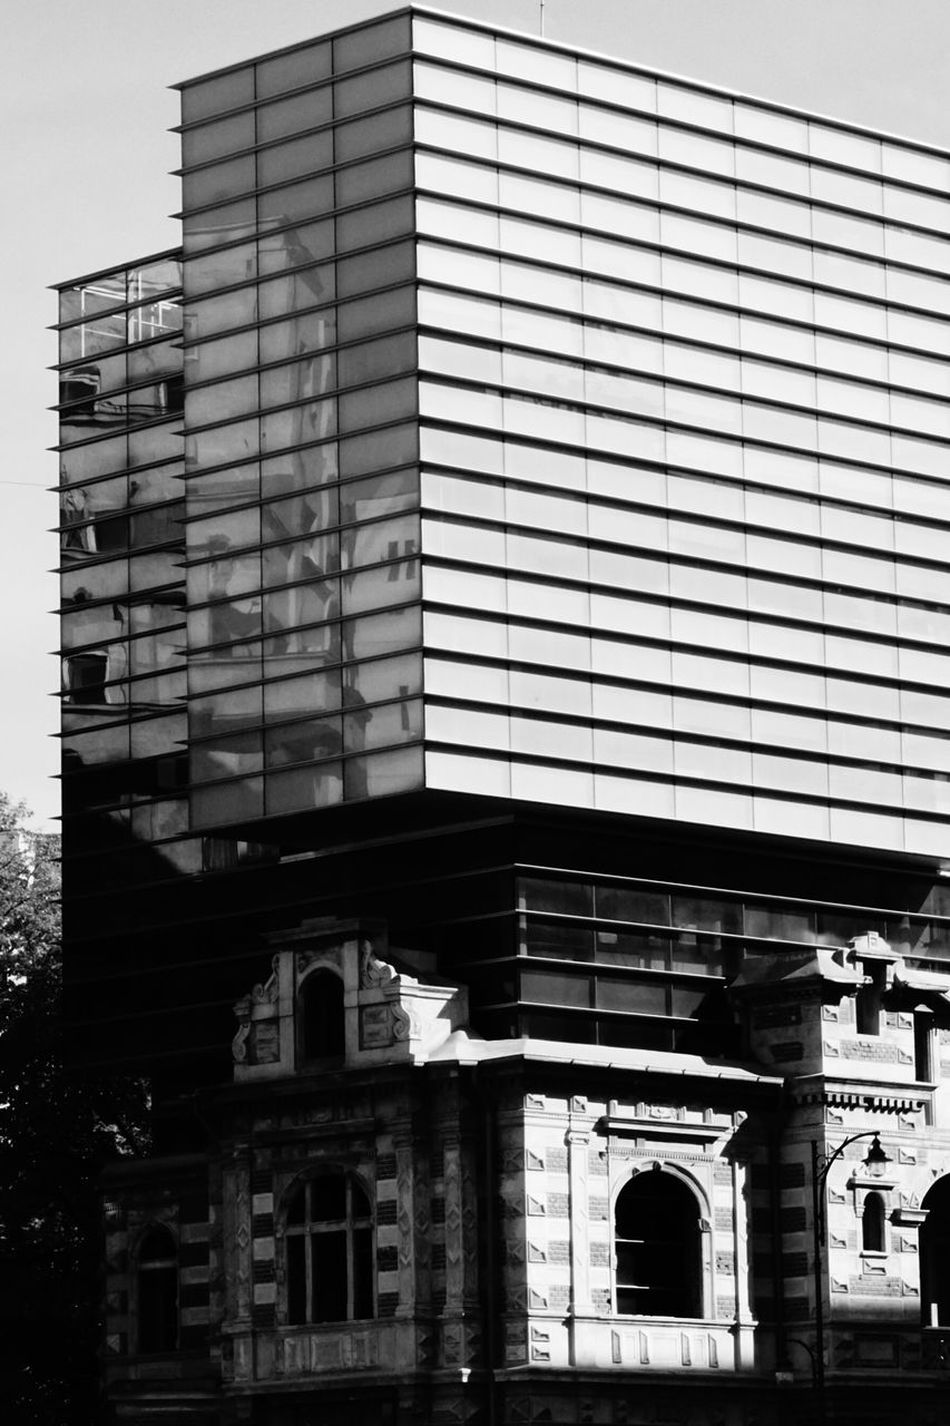 Bucharest Streetphotography Blackandwhite Photography Old And New Buildings New On Top Of Old Building Exterior Day Outdoors Façade No People Lines And Shapes Reflection In The Window Sony A6000 No Photoshop Bucharest, Romania